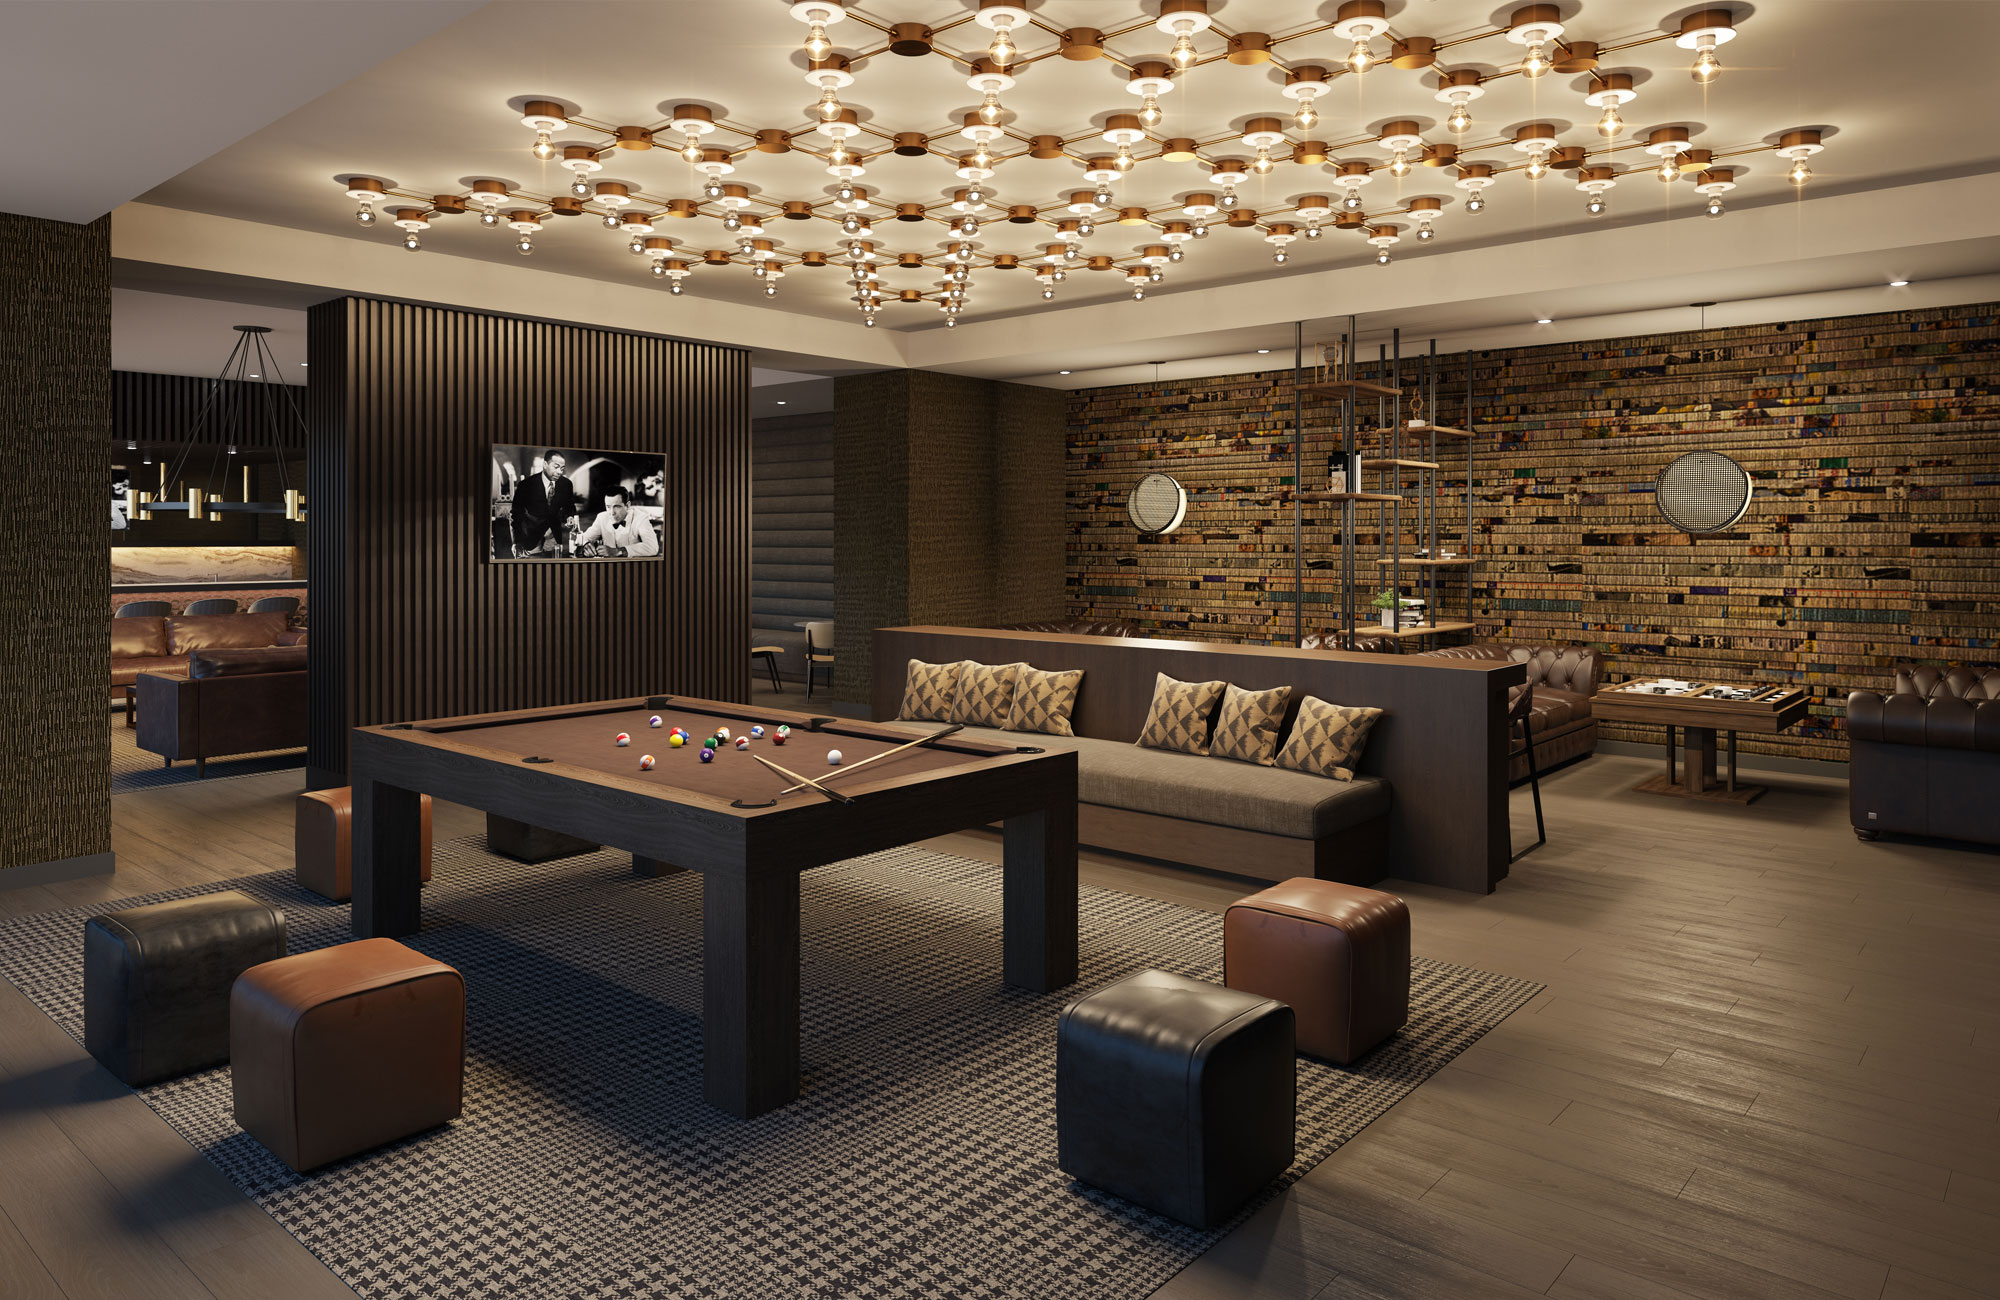 Interior of large game room with pool table and other sitting areas